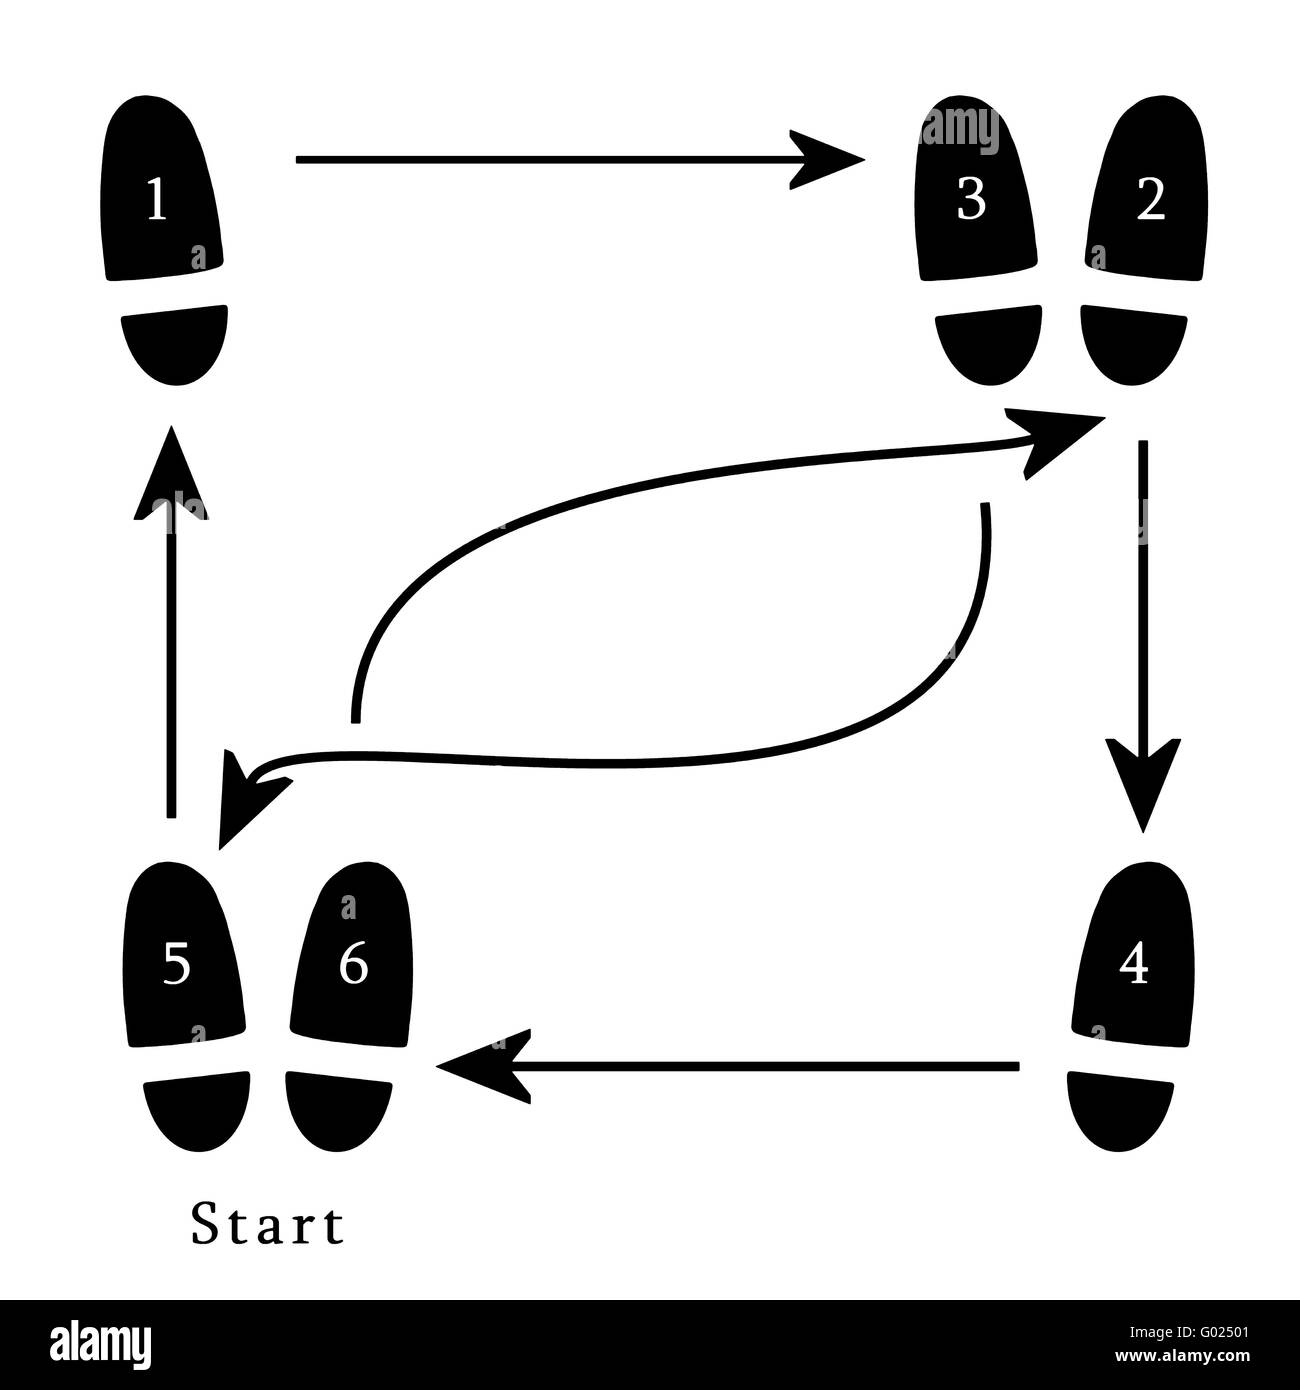 Dance Step Diagram Stock Photos & Dance Step Diagram Stock ... on